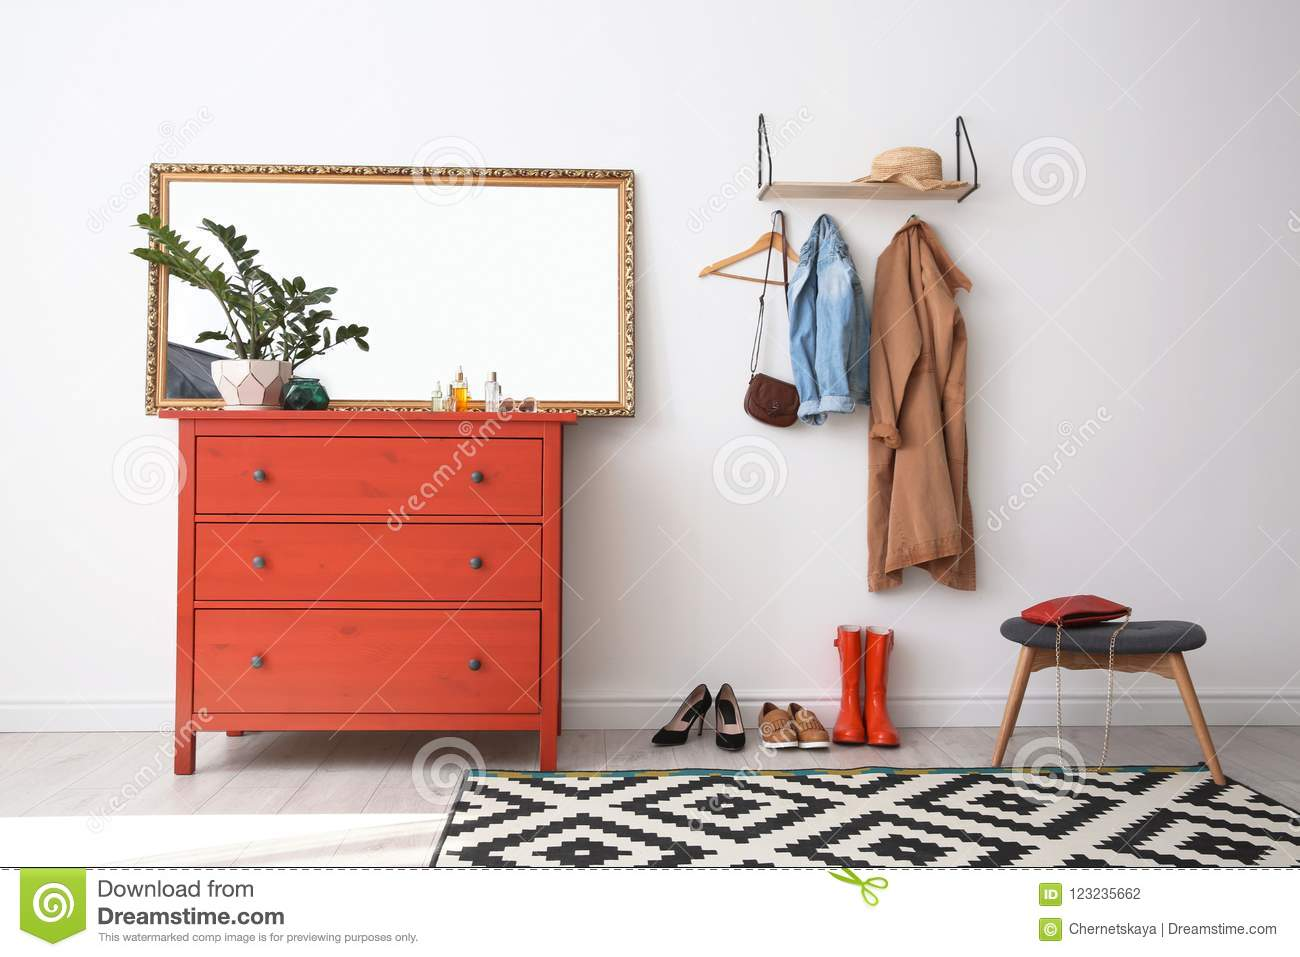 Chest of drawers in the hallway with a mirror